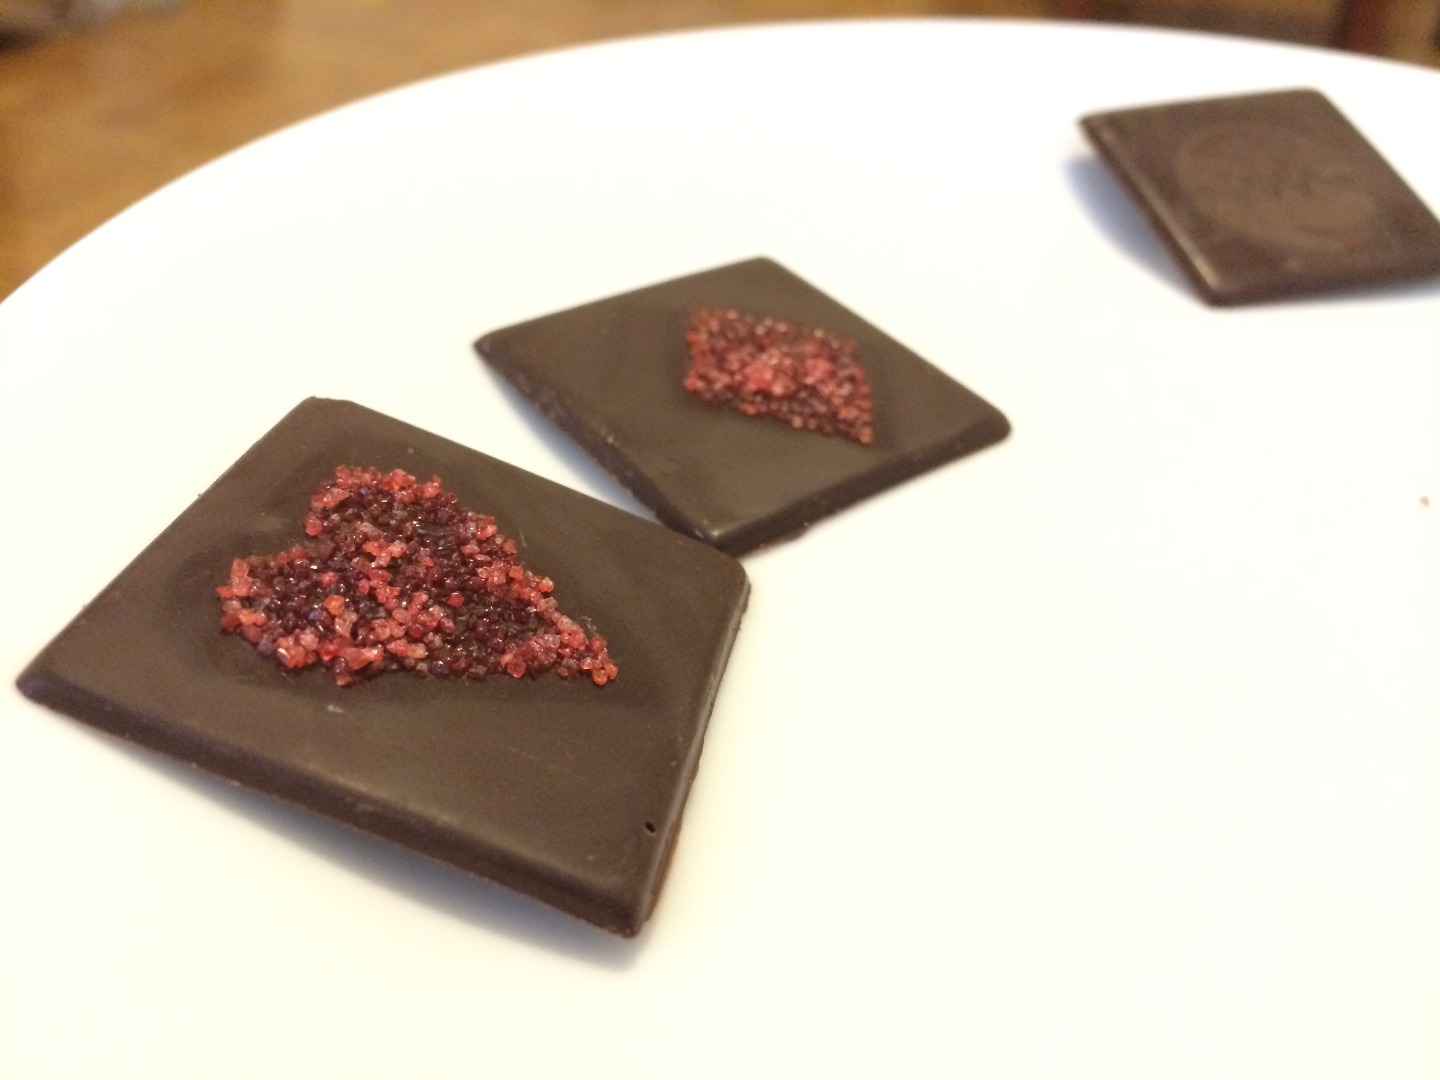 Picture of Caramelize Sugar Onto Chocolate With a Laser Cutter